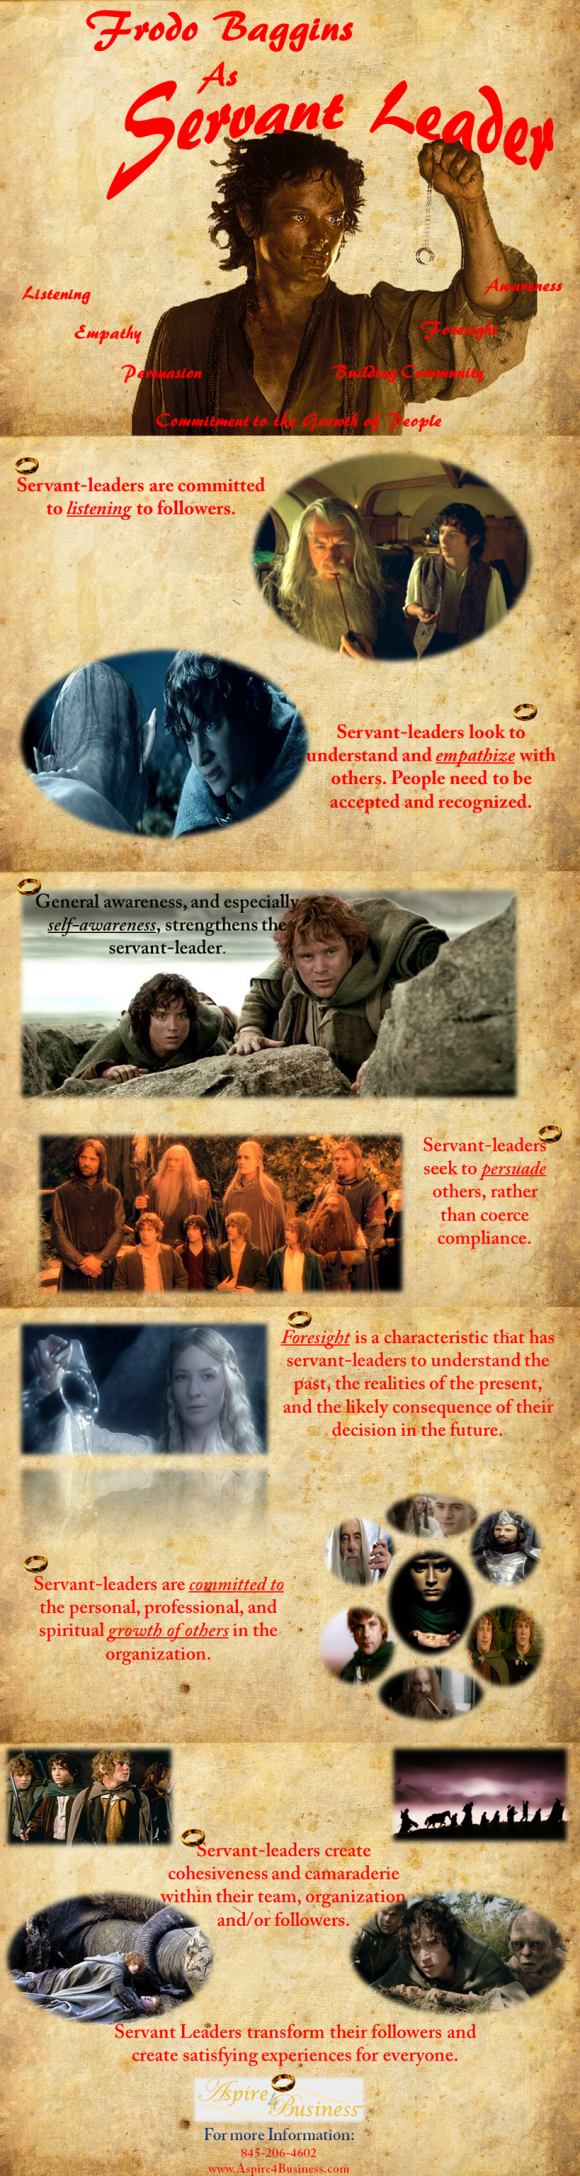 the-analogy-of-frodo-baggins-as-servant-leader